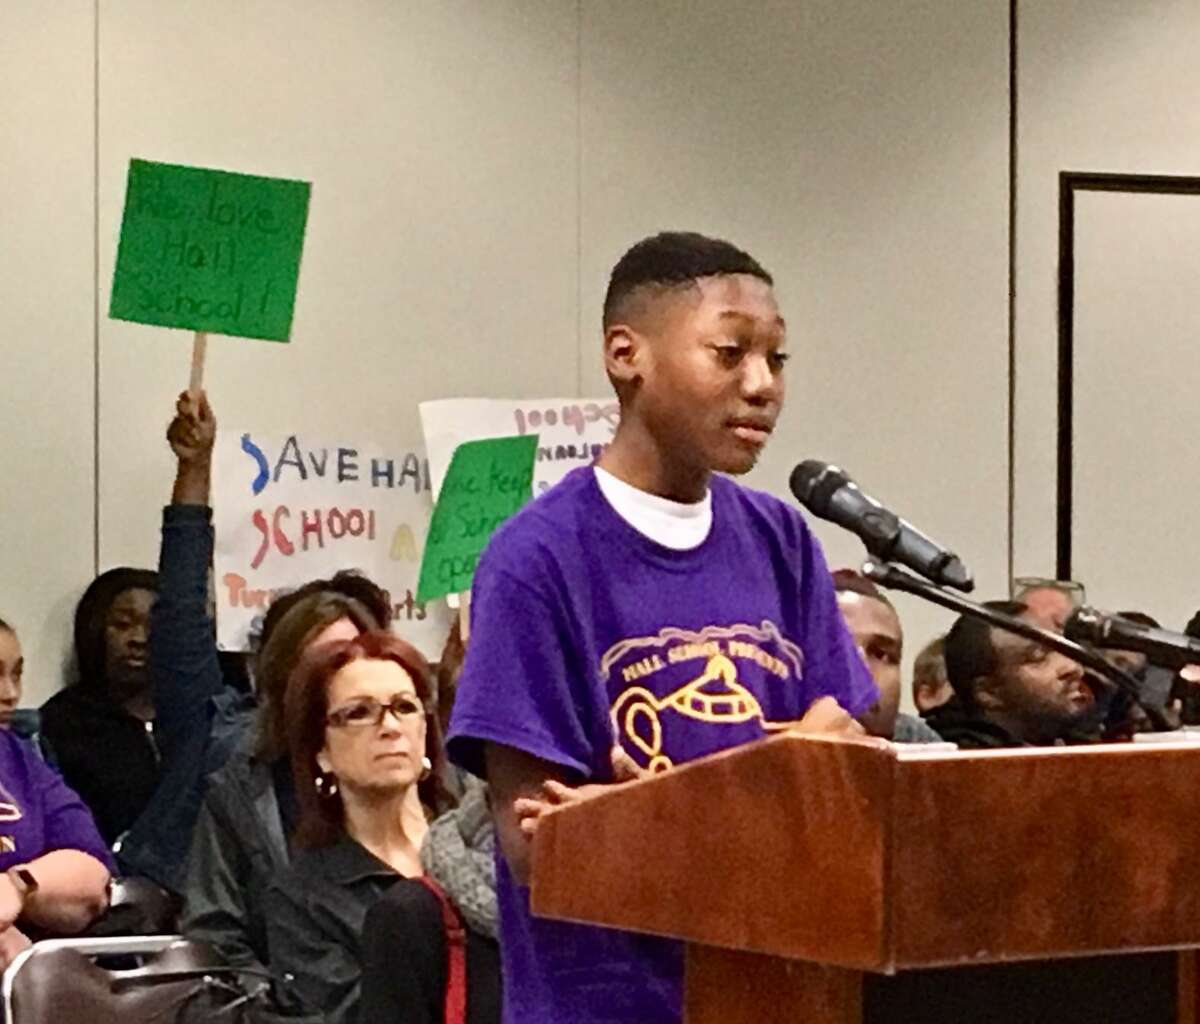 The Hall School community makes its case to the Bridgeport Board of Education. May 13, 2019.